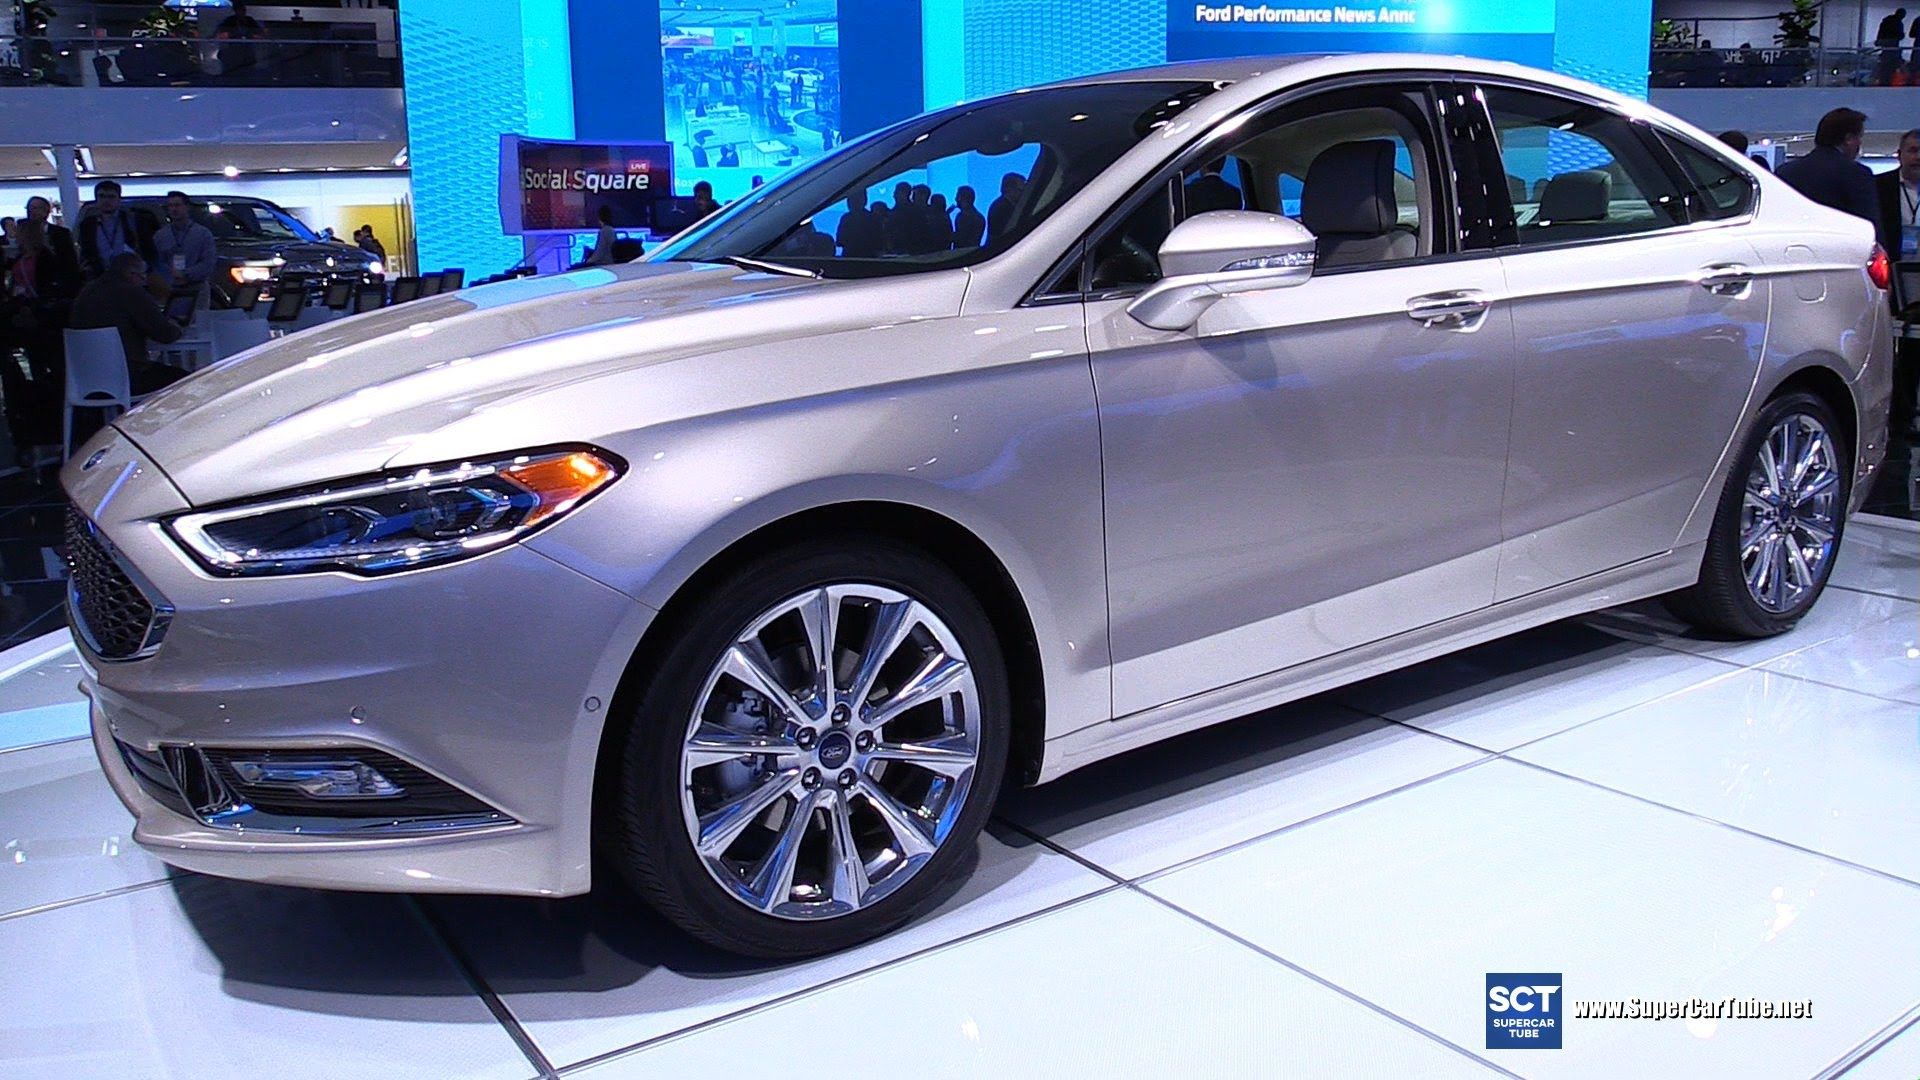 2017 Ford Fusion Platinum Exterior And Interior Walkaround Debut At 2016 Detroit Auto Ford Fusion Europe Car New Cars